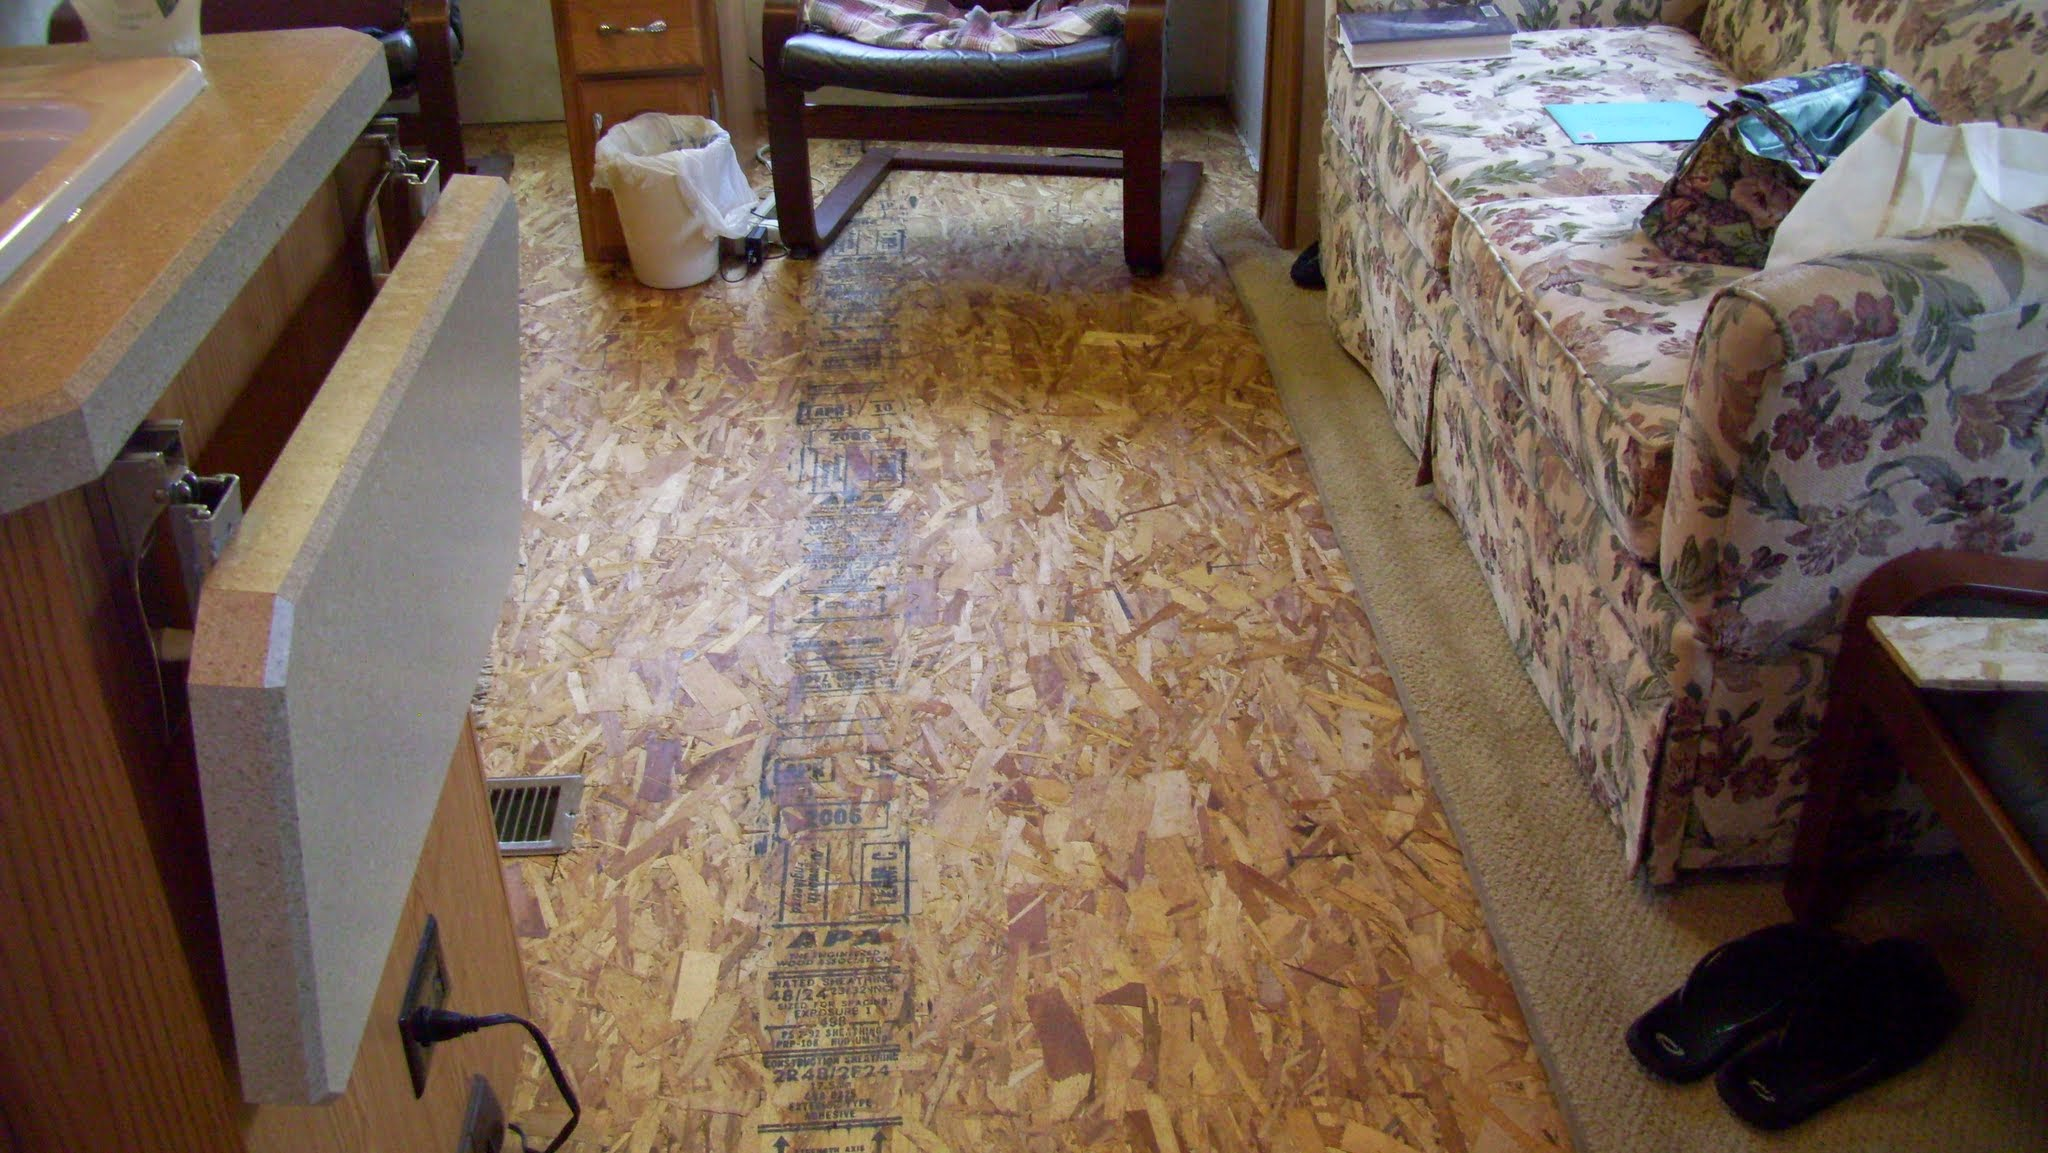 Project installing laminate flooring in living room - Carpet or laminate in living room ...